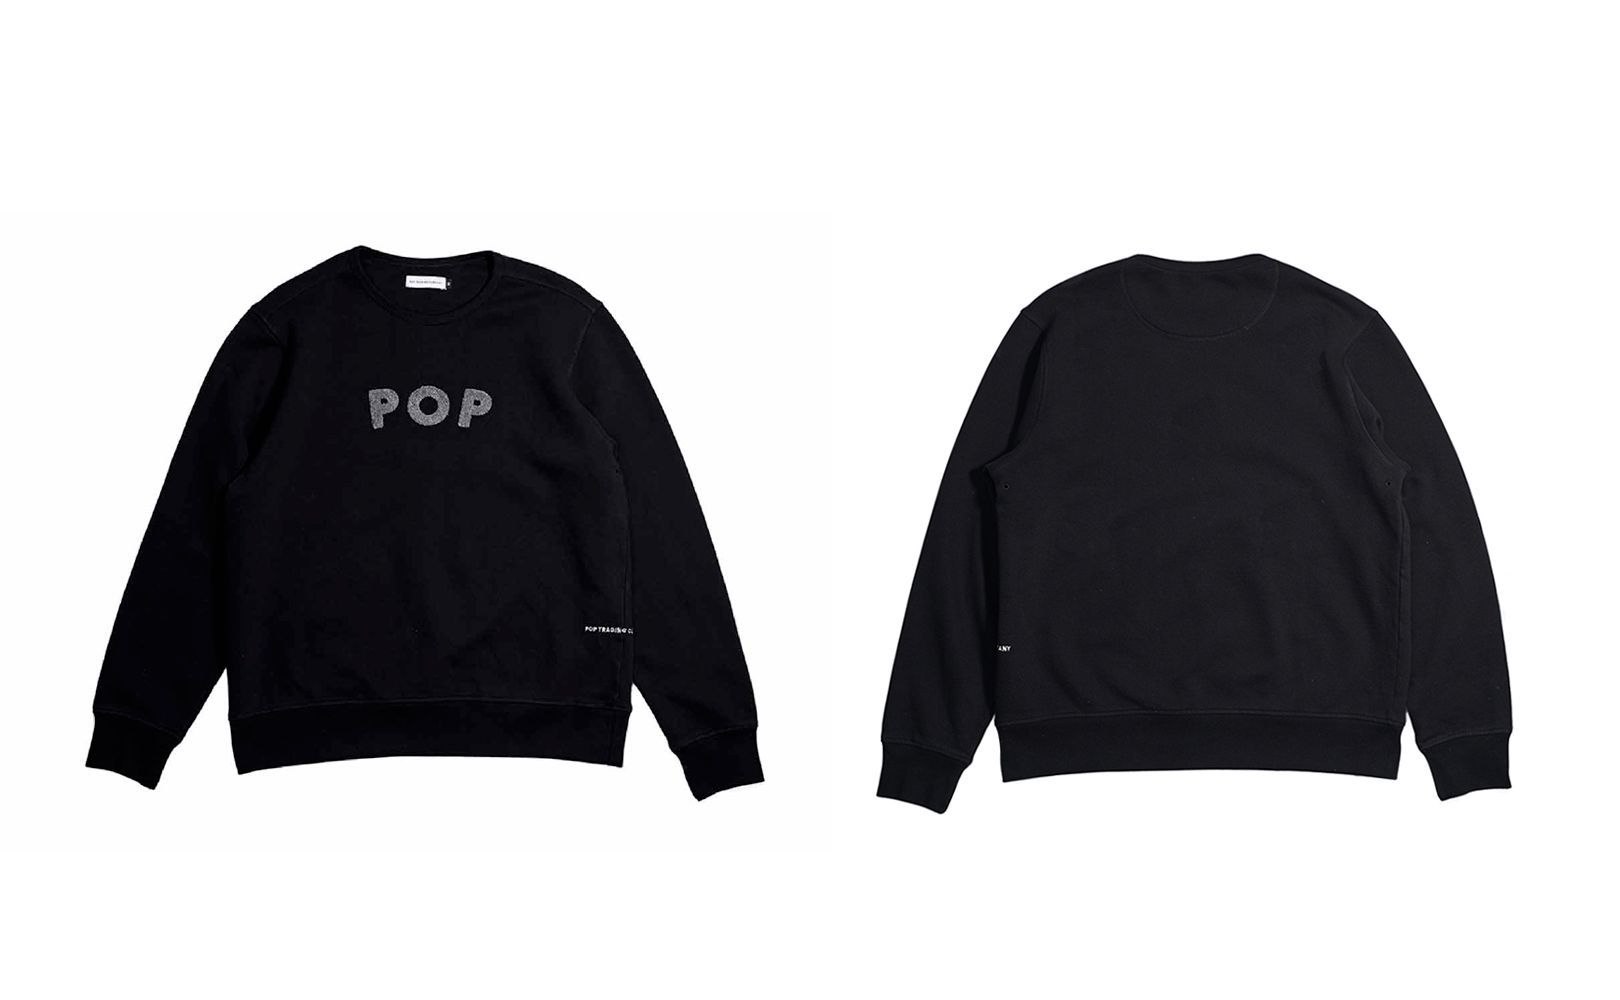 pop-trading-company-aw17-product-mr-porter-exclusive-3-uni-crewneck-black